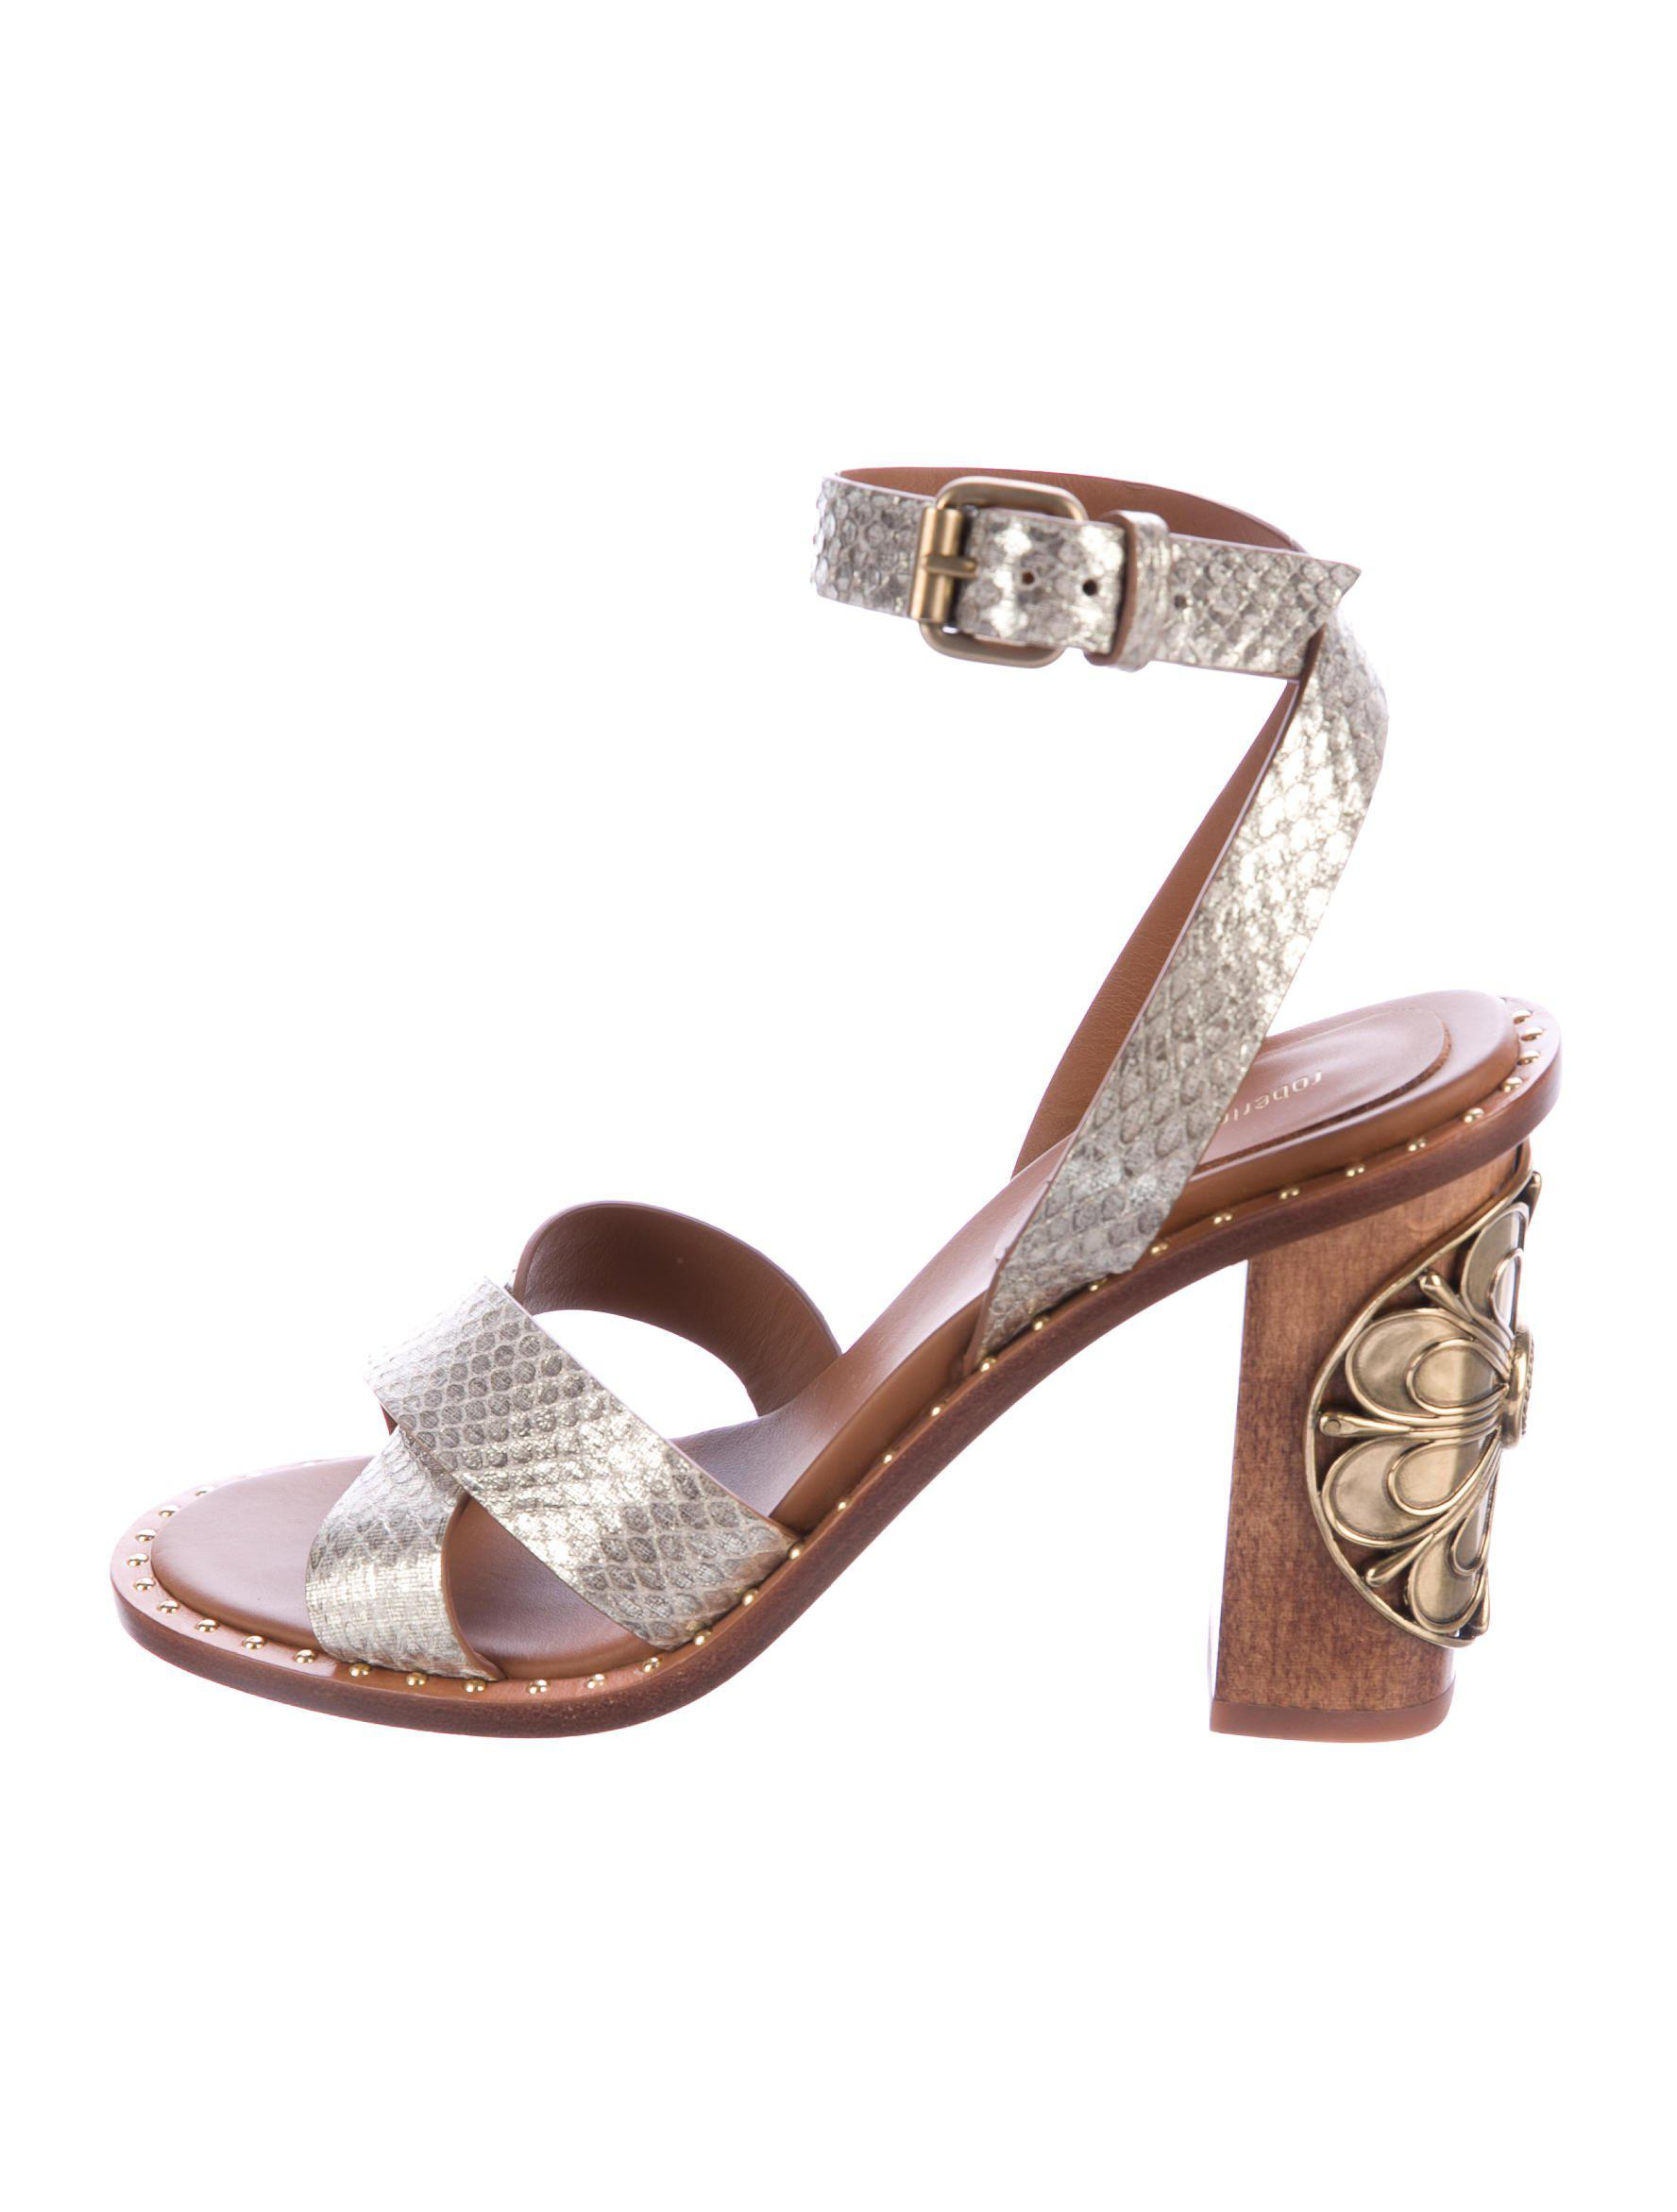 Roberto Cavalli peep toe sandals discount low shipping fee cheap price from china under 70 dollars clearance amazon really XVUn8V